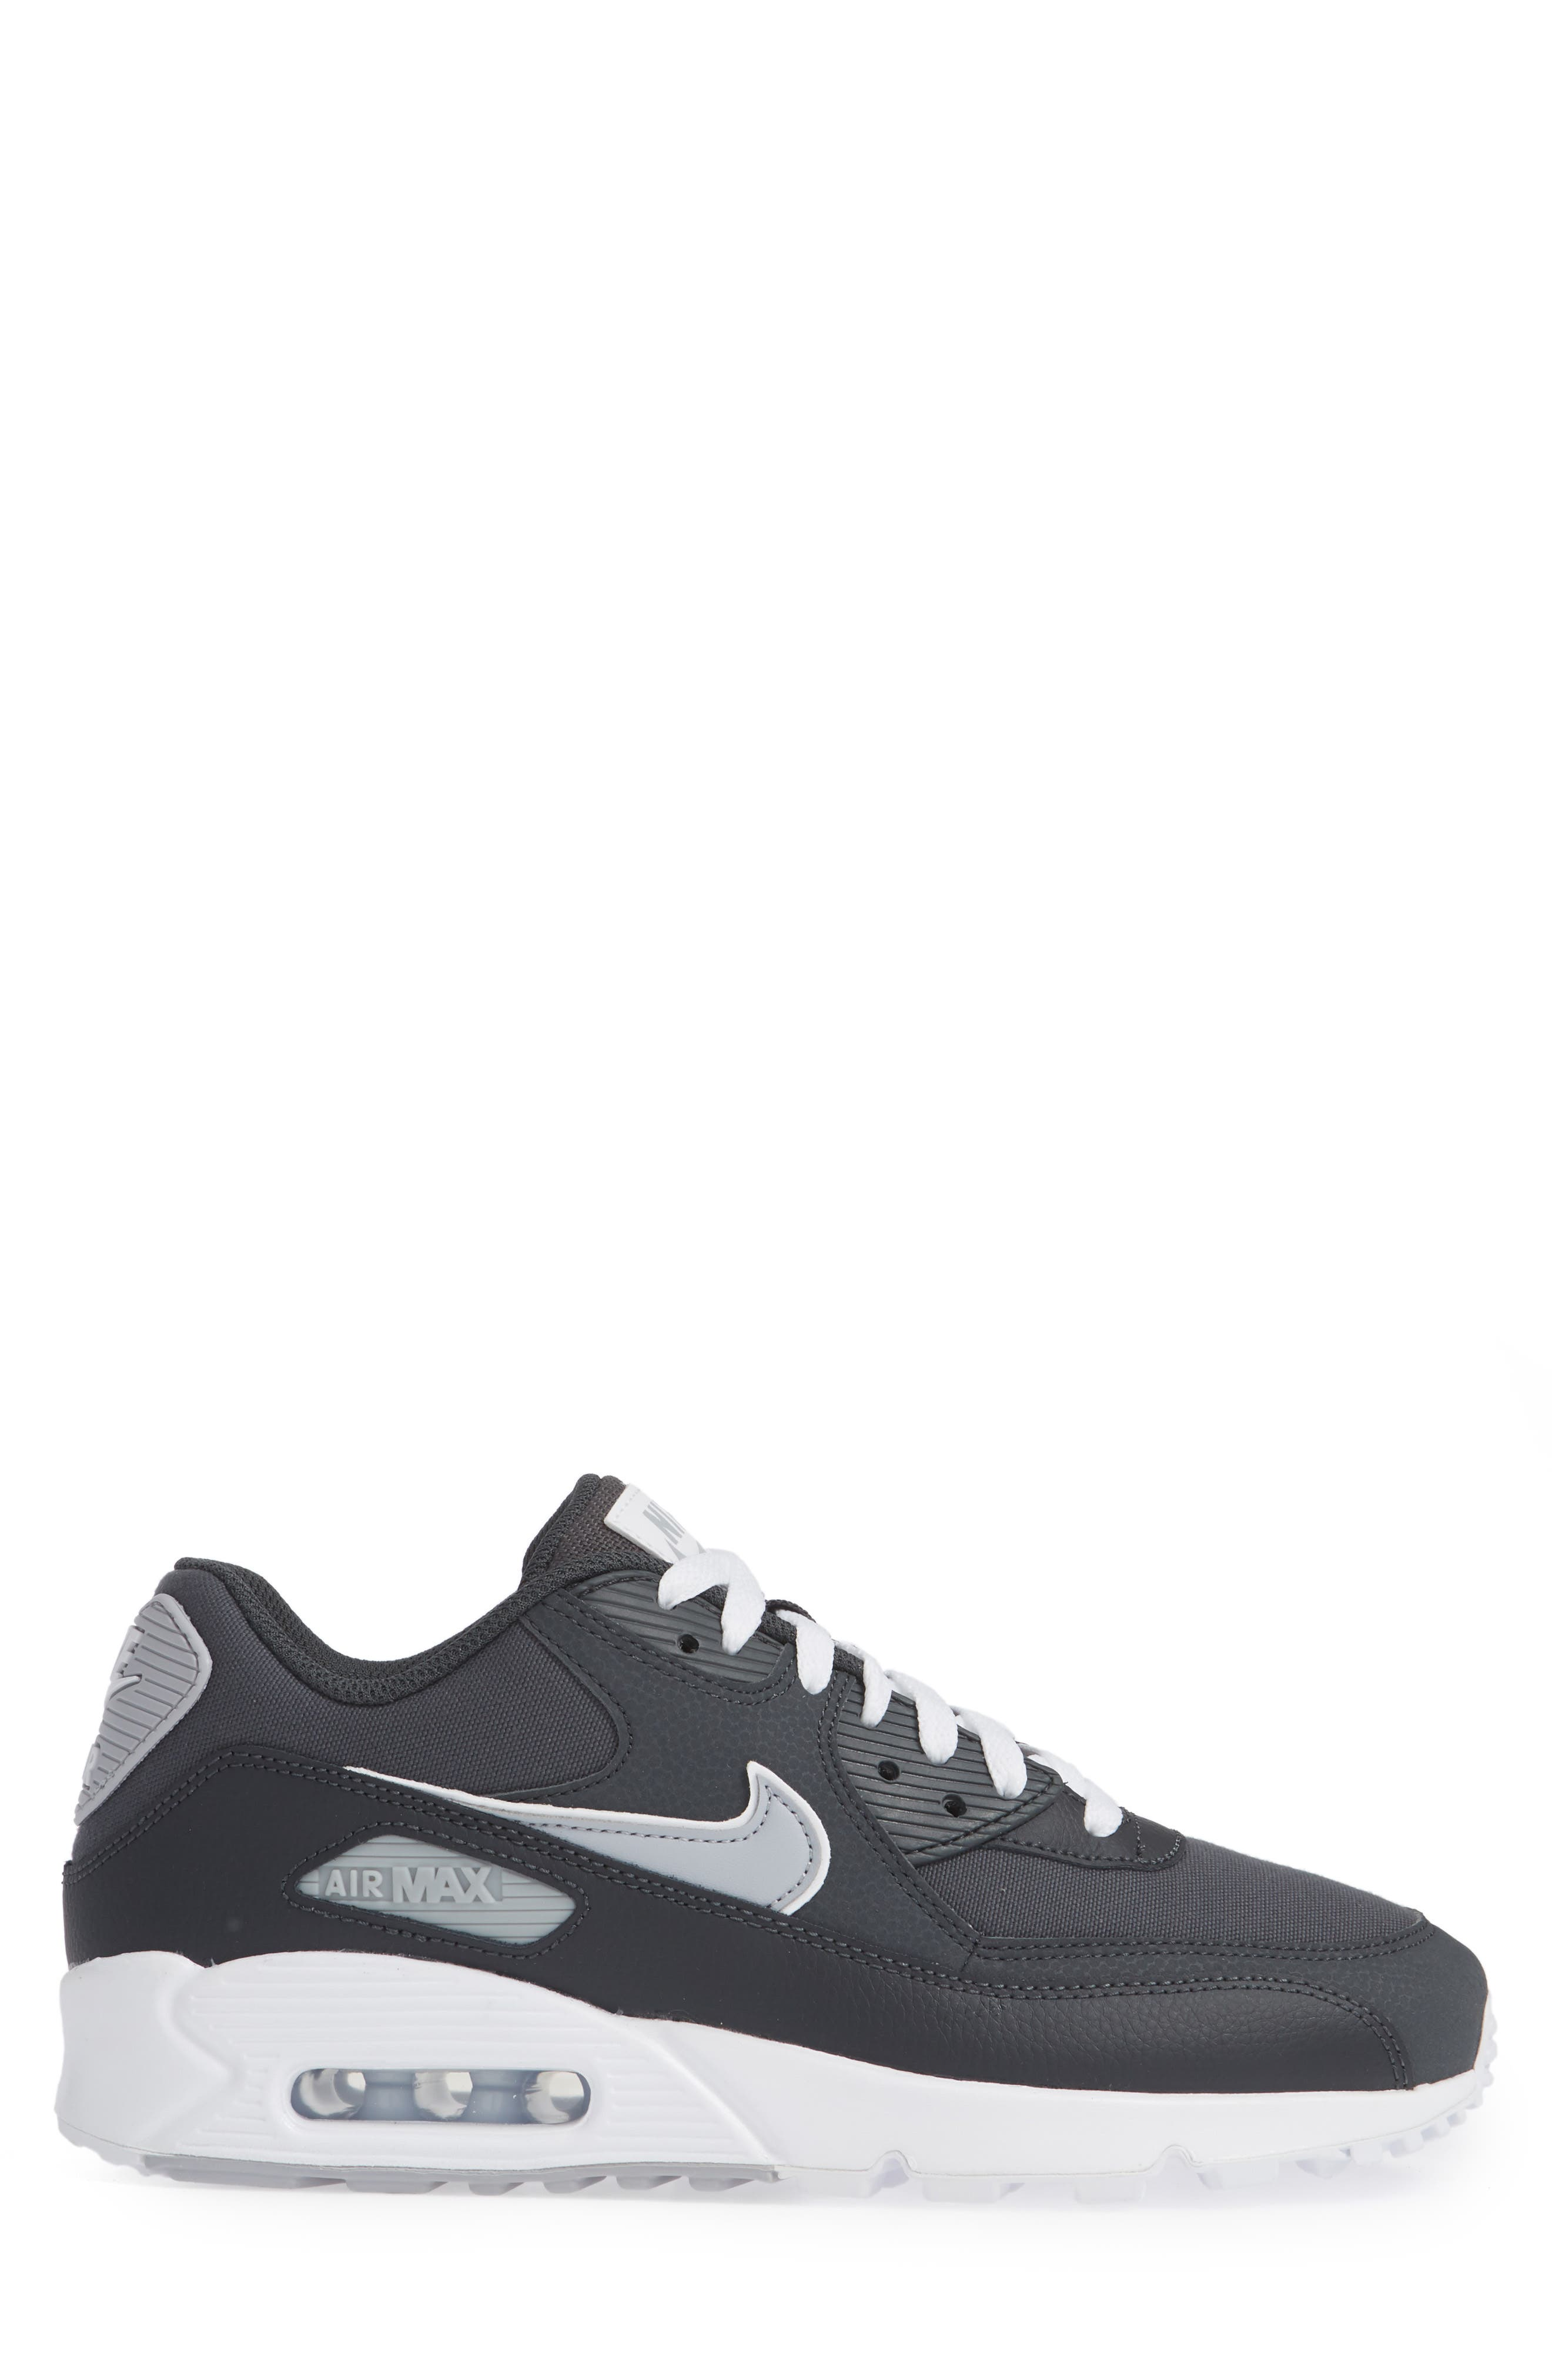 Air Max 90 Essential Sneaker,                             Alternate thumbnail 3, color,                             ANTHRACITE/ WOLF GREY/ WHITE